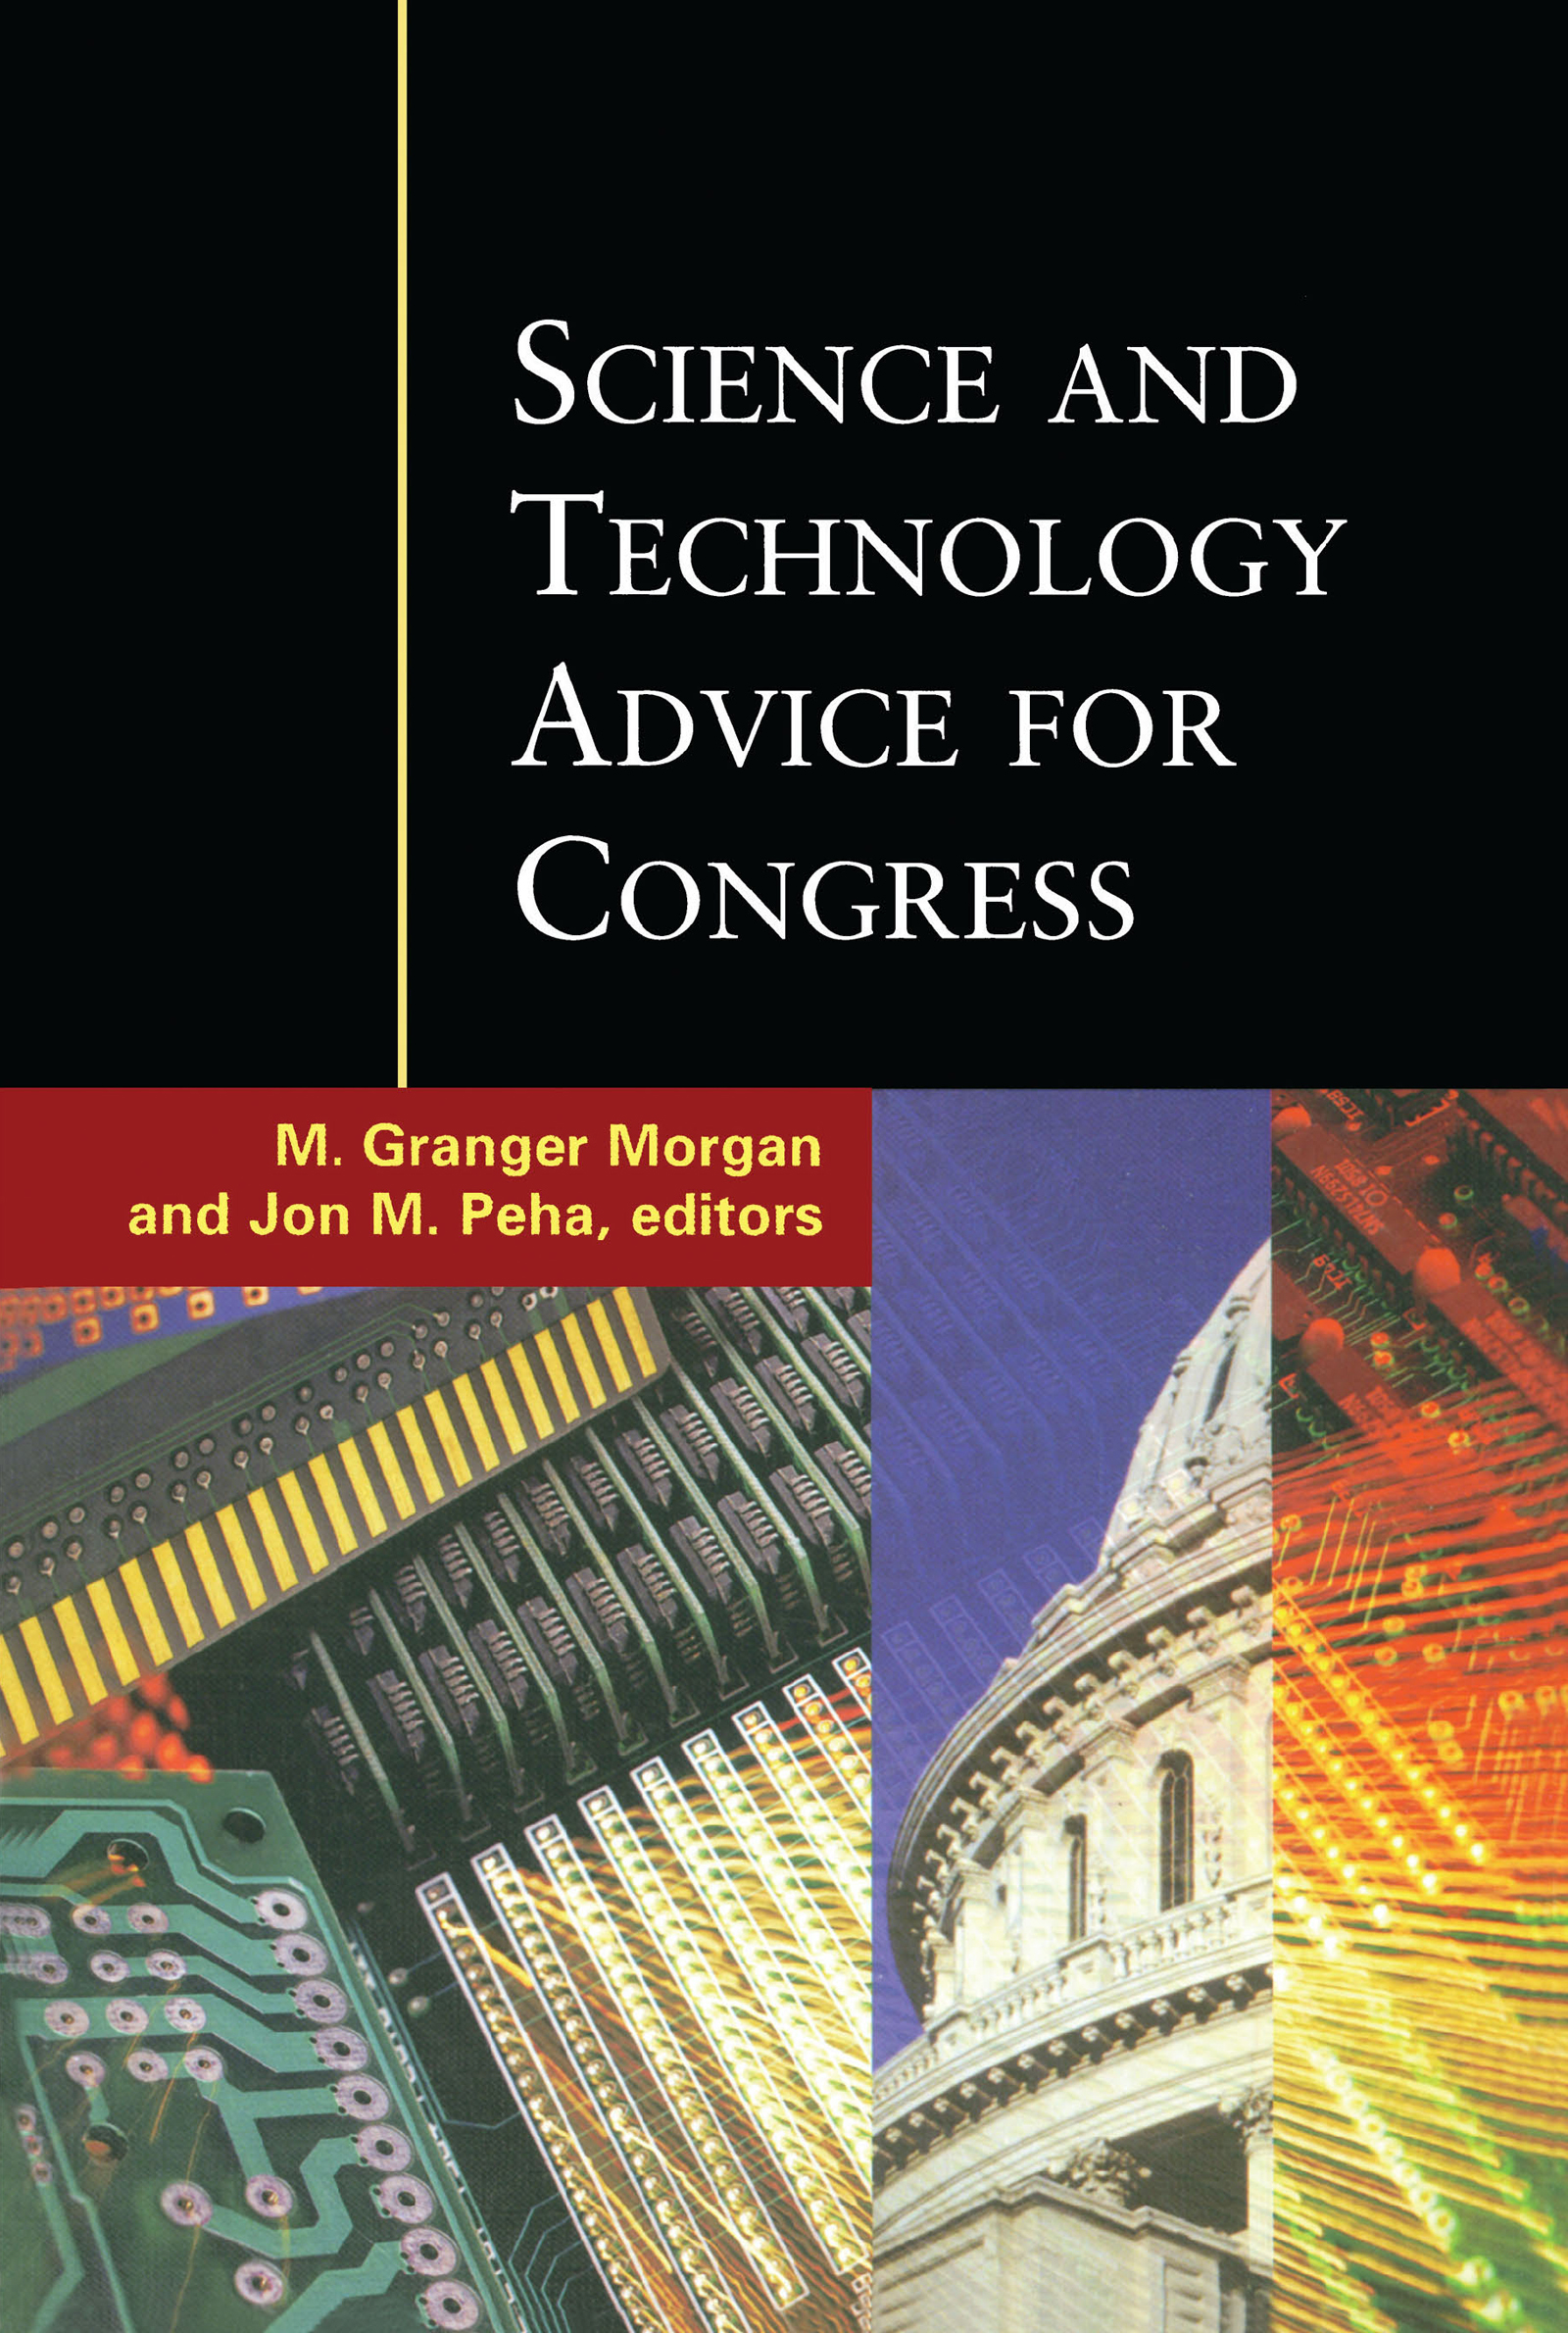 Science and Technology Advice for Congress: 1st Edition (Paperback) book cover